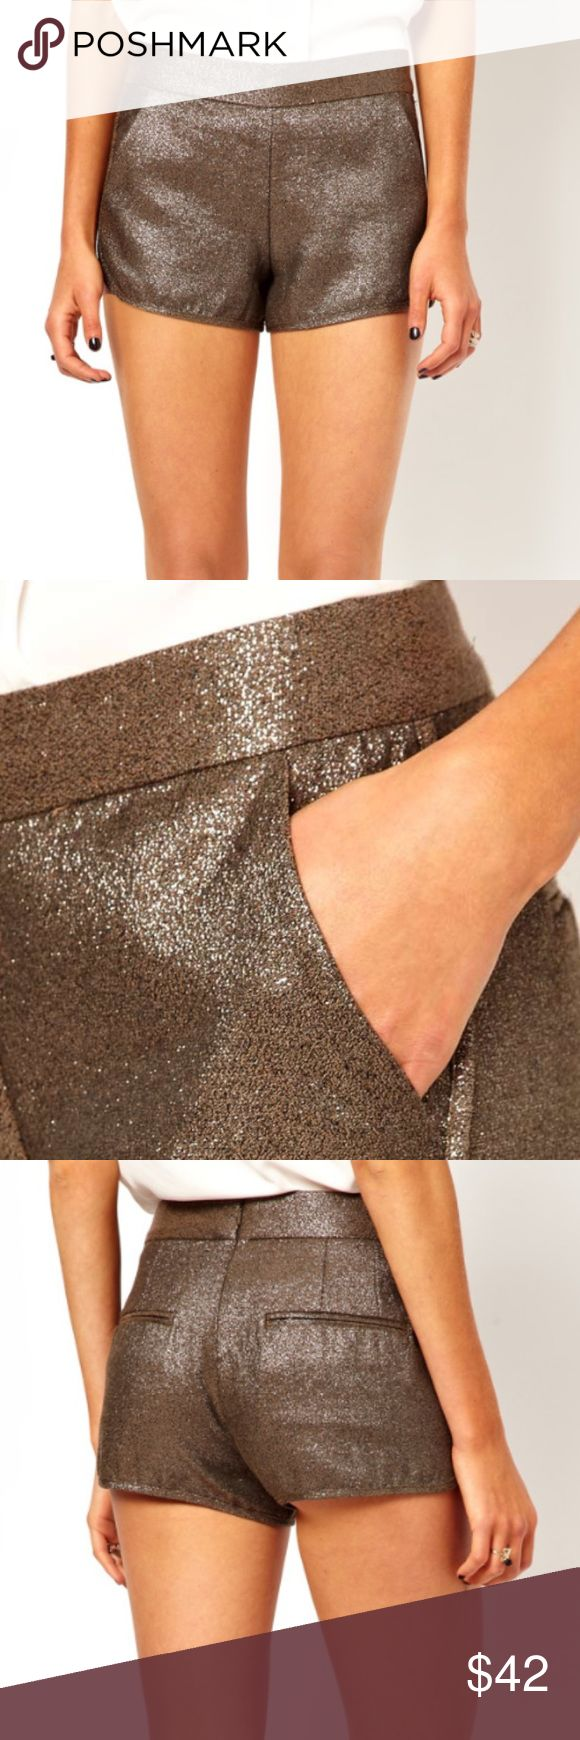 French Connection Metallic Shorts - Size 4 The perfect shorts for a night out. Can be dressed up or down. The copper color is neutral and pairs equally well with black or white. I've also worn them in the winter layered over black tights! The shorts for true to size - the leggy (and presumably very tall) model is making them look shorter than they actually are - as in, your butt check won't be shown. Has both side and back pockets. French Connection Shorts